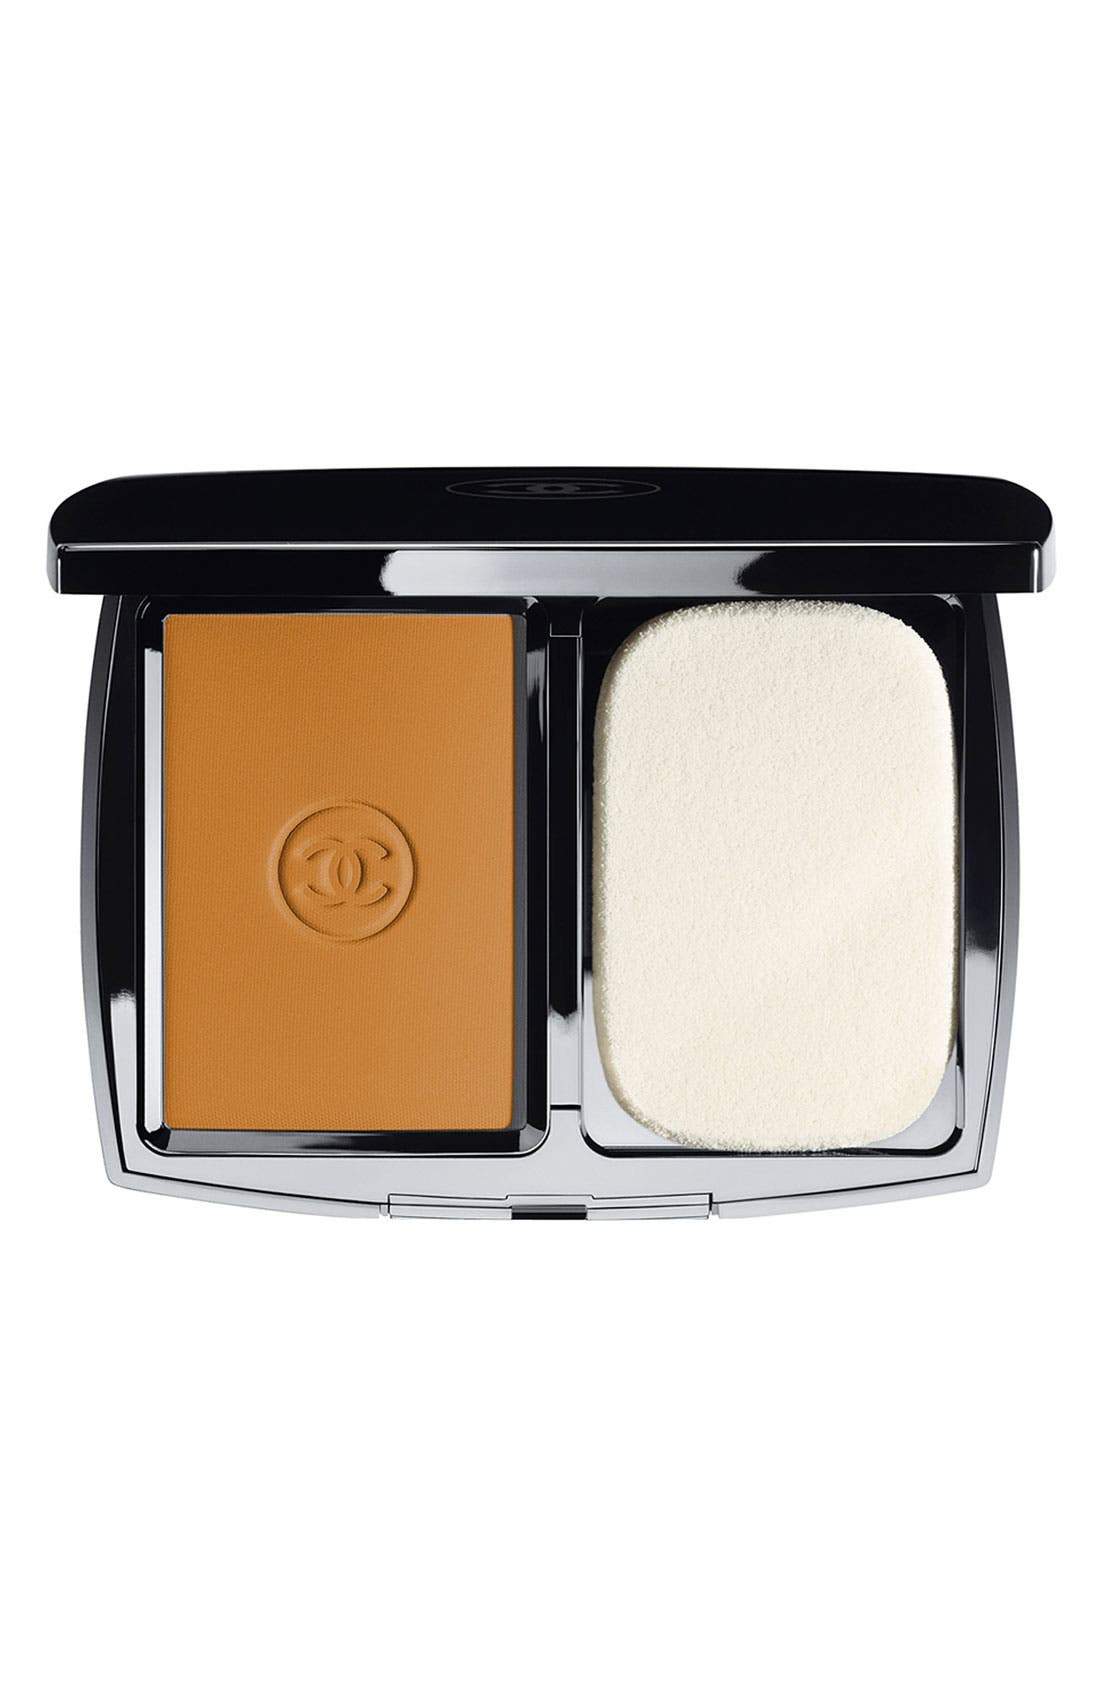 DOUBLE PERFECTION LUMIÈRE<br />Long-Wear Flawless Sunscreen Powder Makeup Broad Spectrum SPF 15,                             Main thumbnail 14, color,